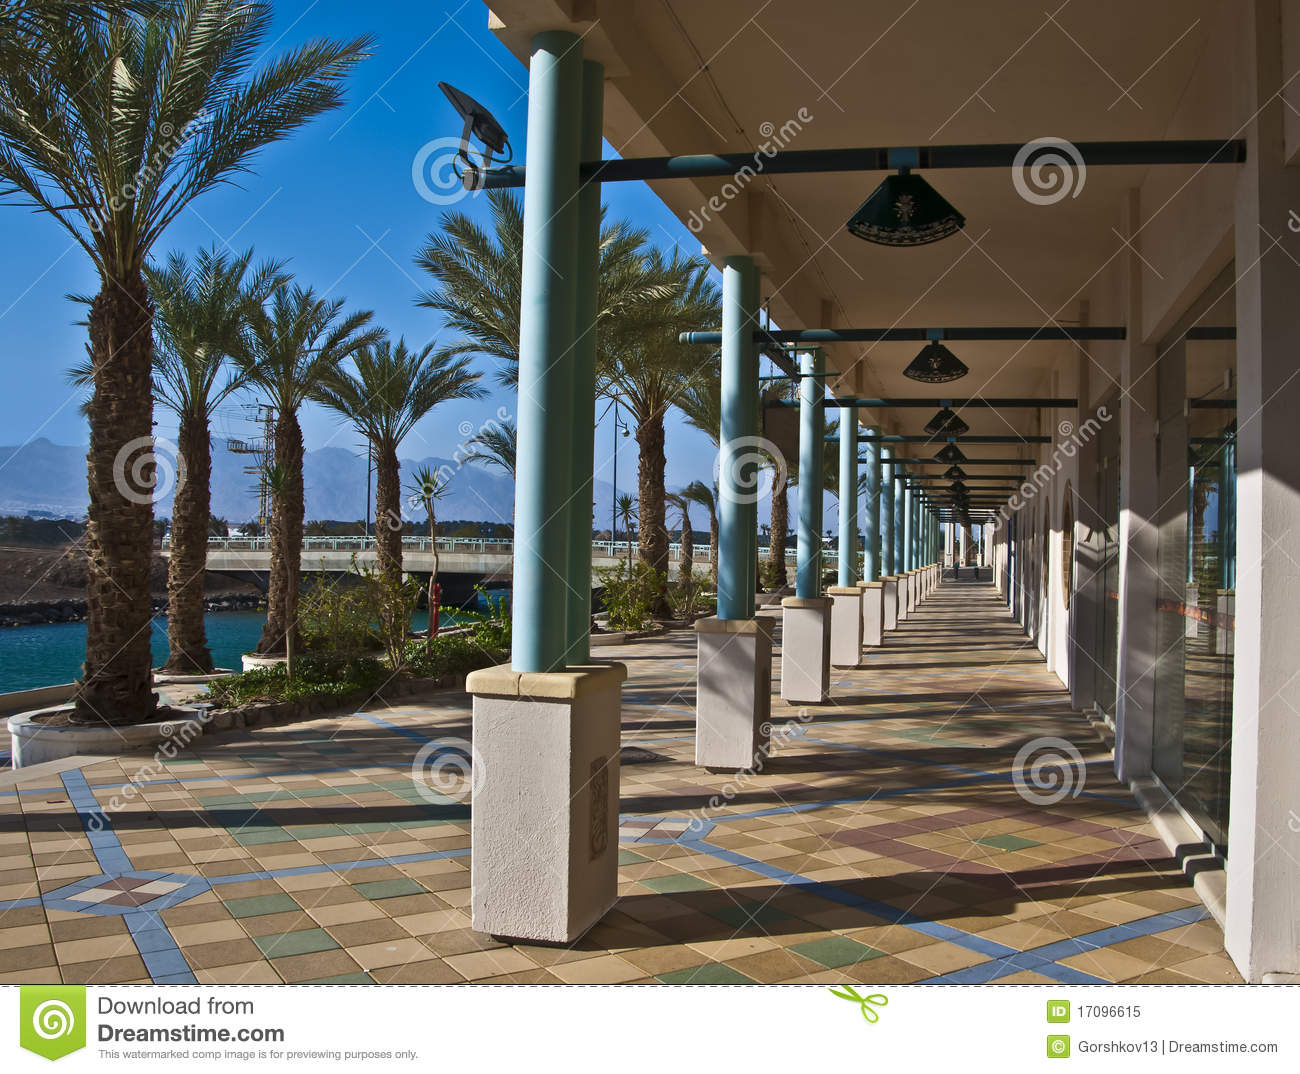 Mening over toevluchthotels in Eilat stad, Israël